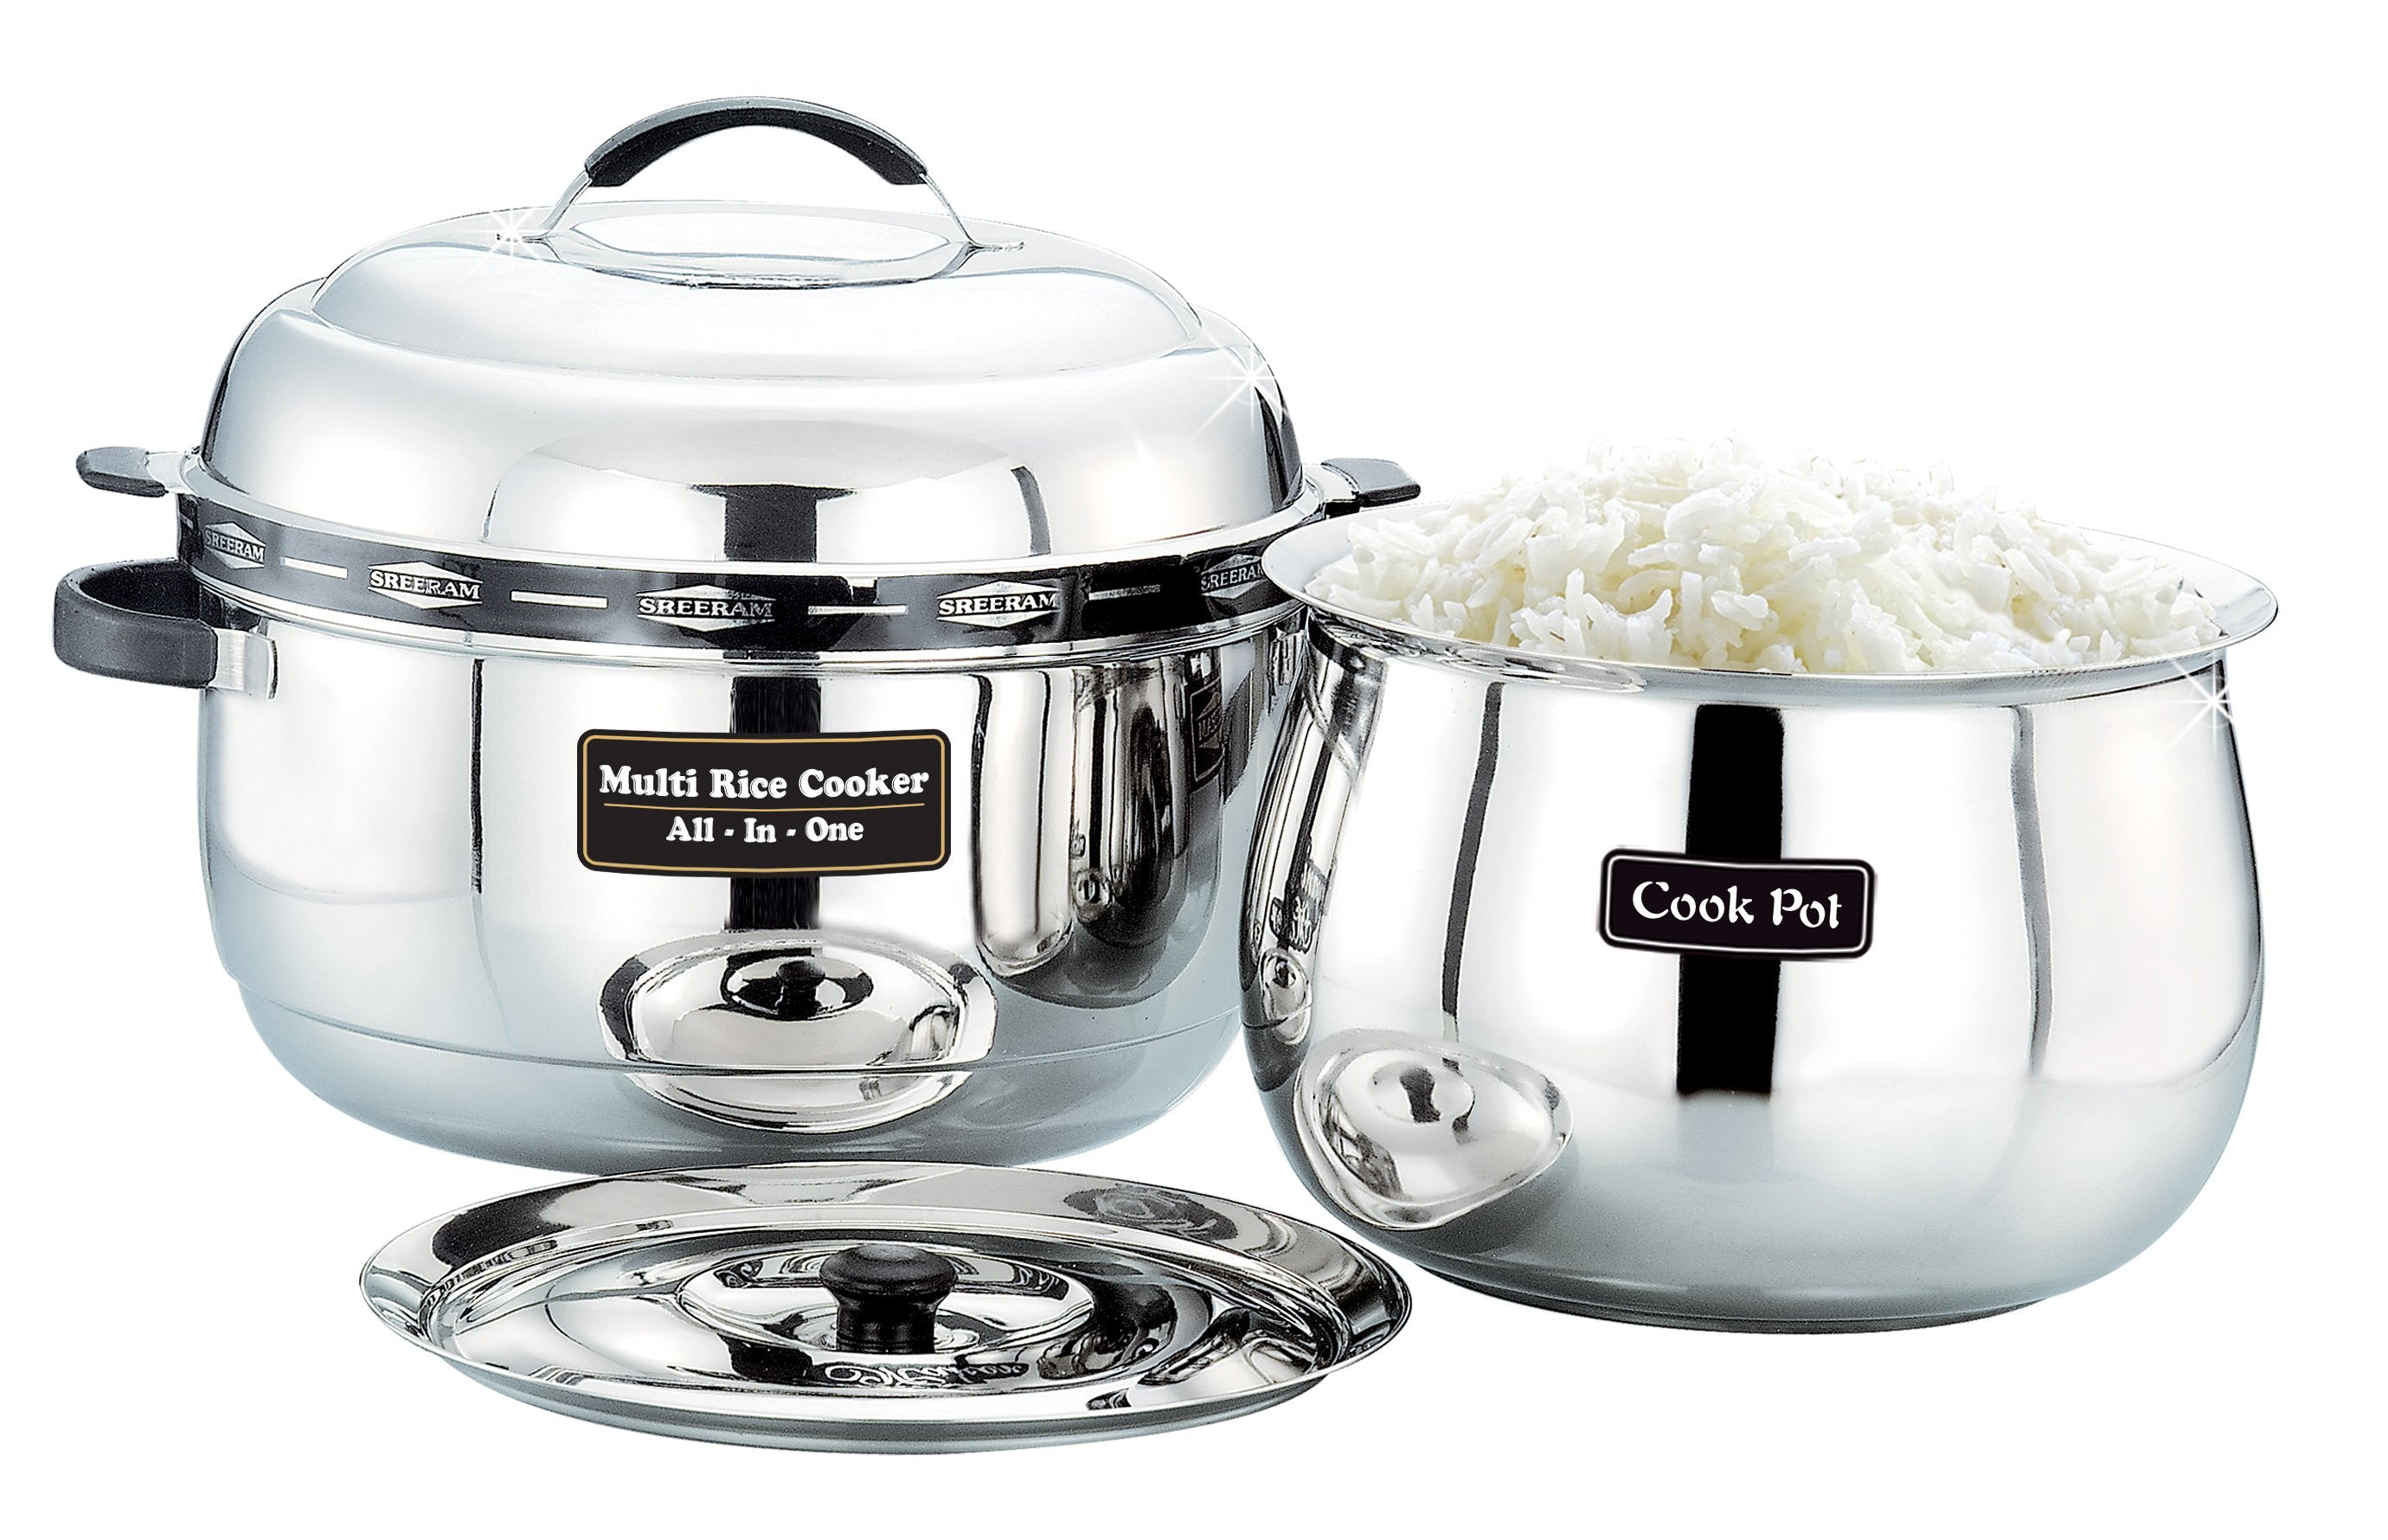 Sreeram Kitchen Extra Large Multi Rice Cooker get best offers deals free and coupons online at buythevalue.in